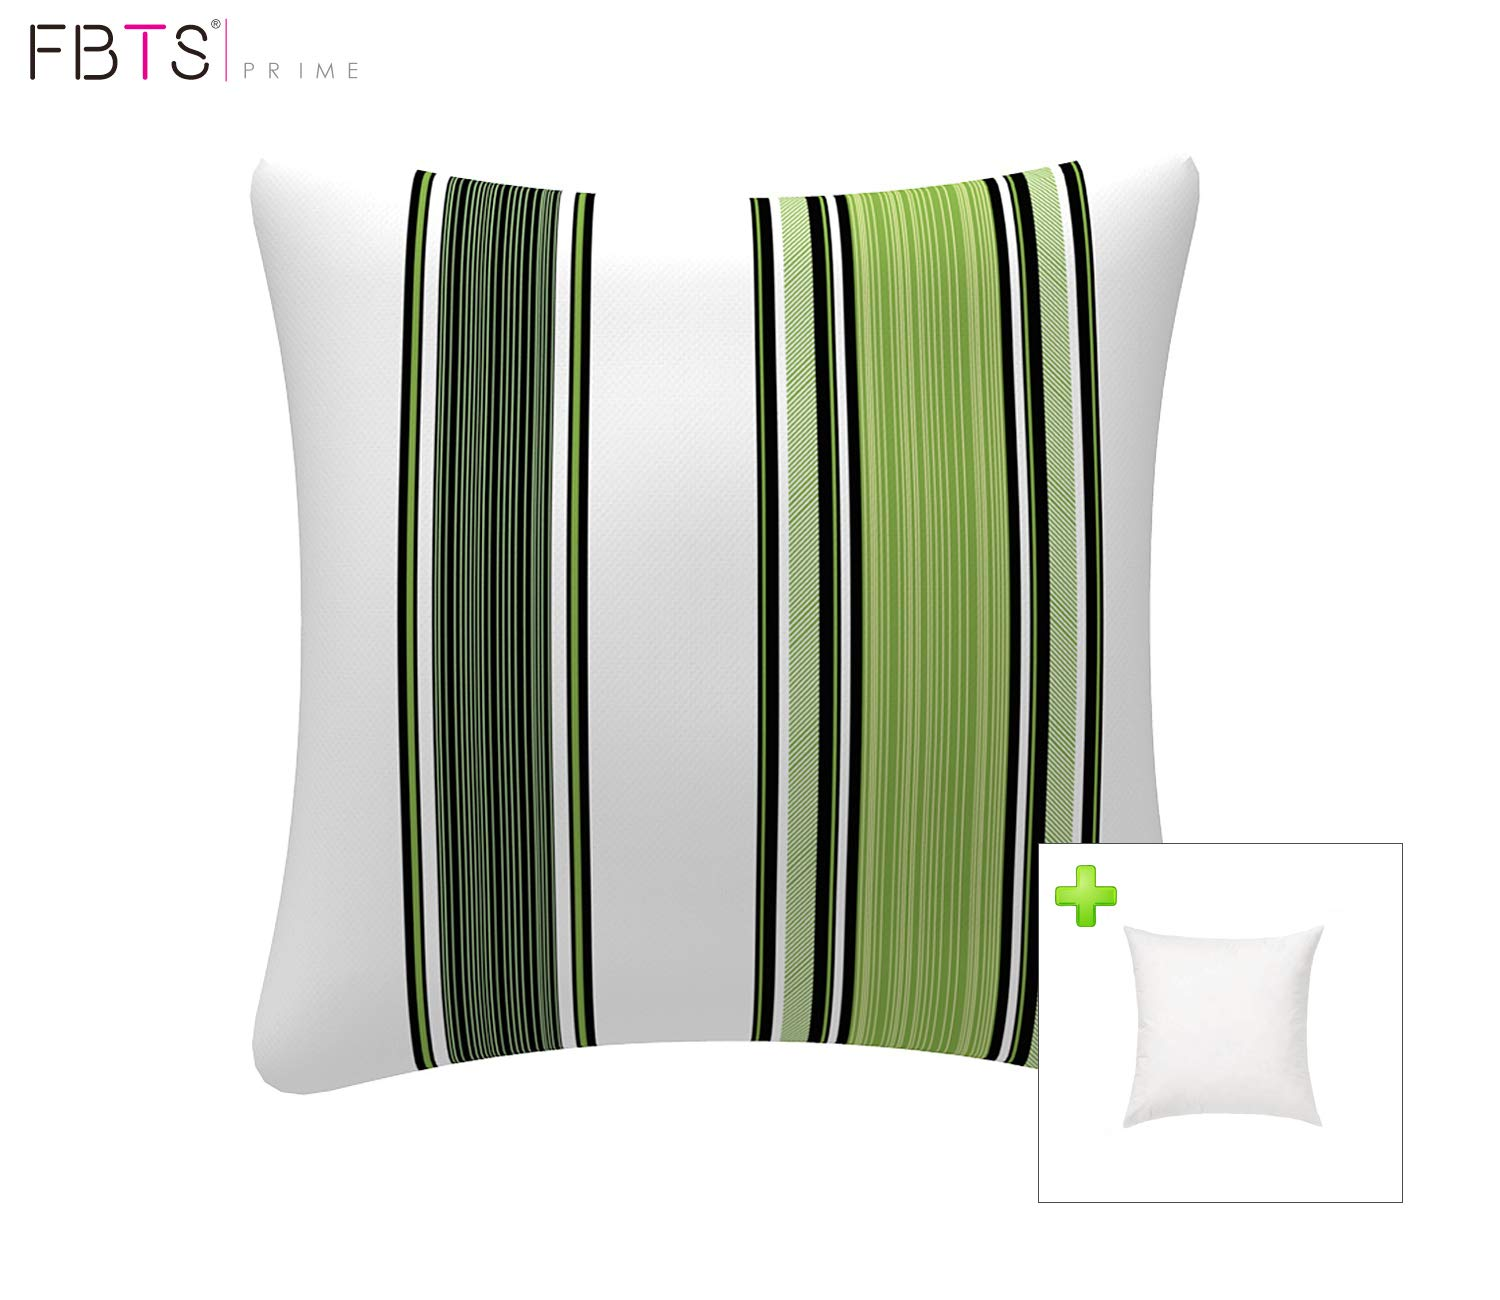 online at best price FBTS Prime Outdoor Decorative Pillows with ...